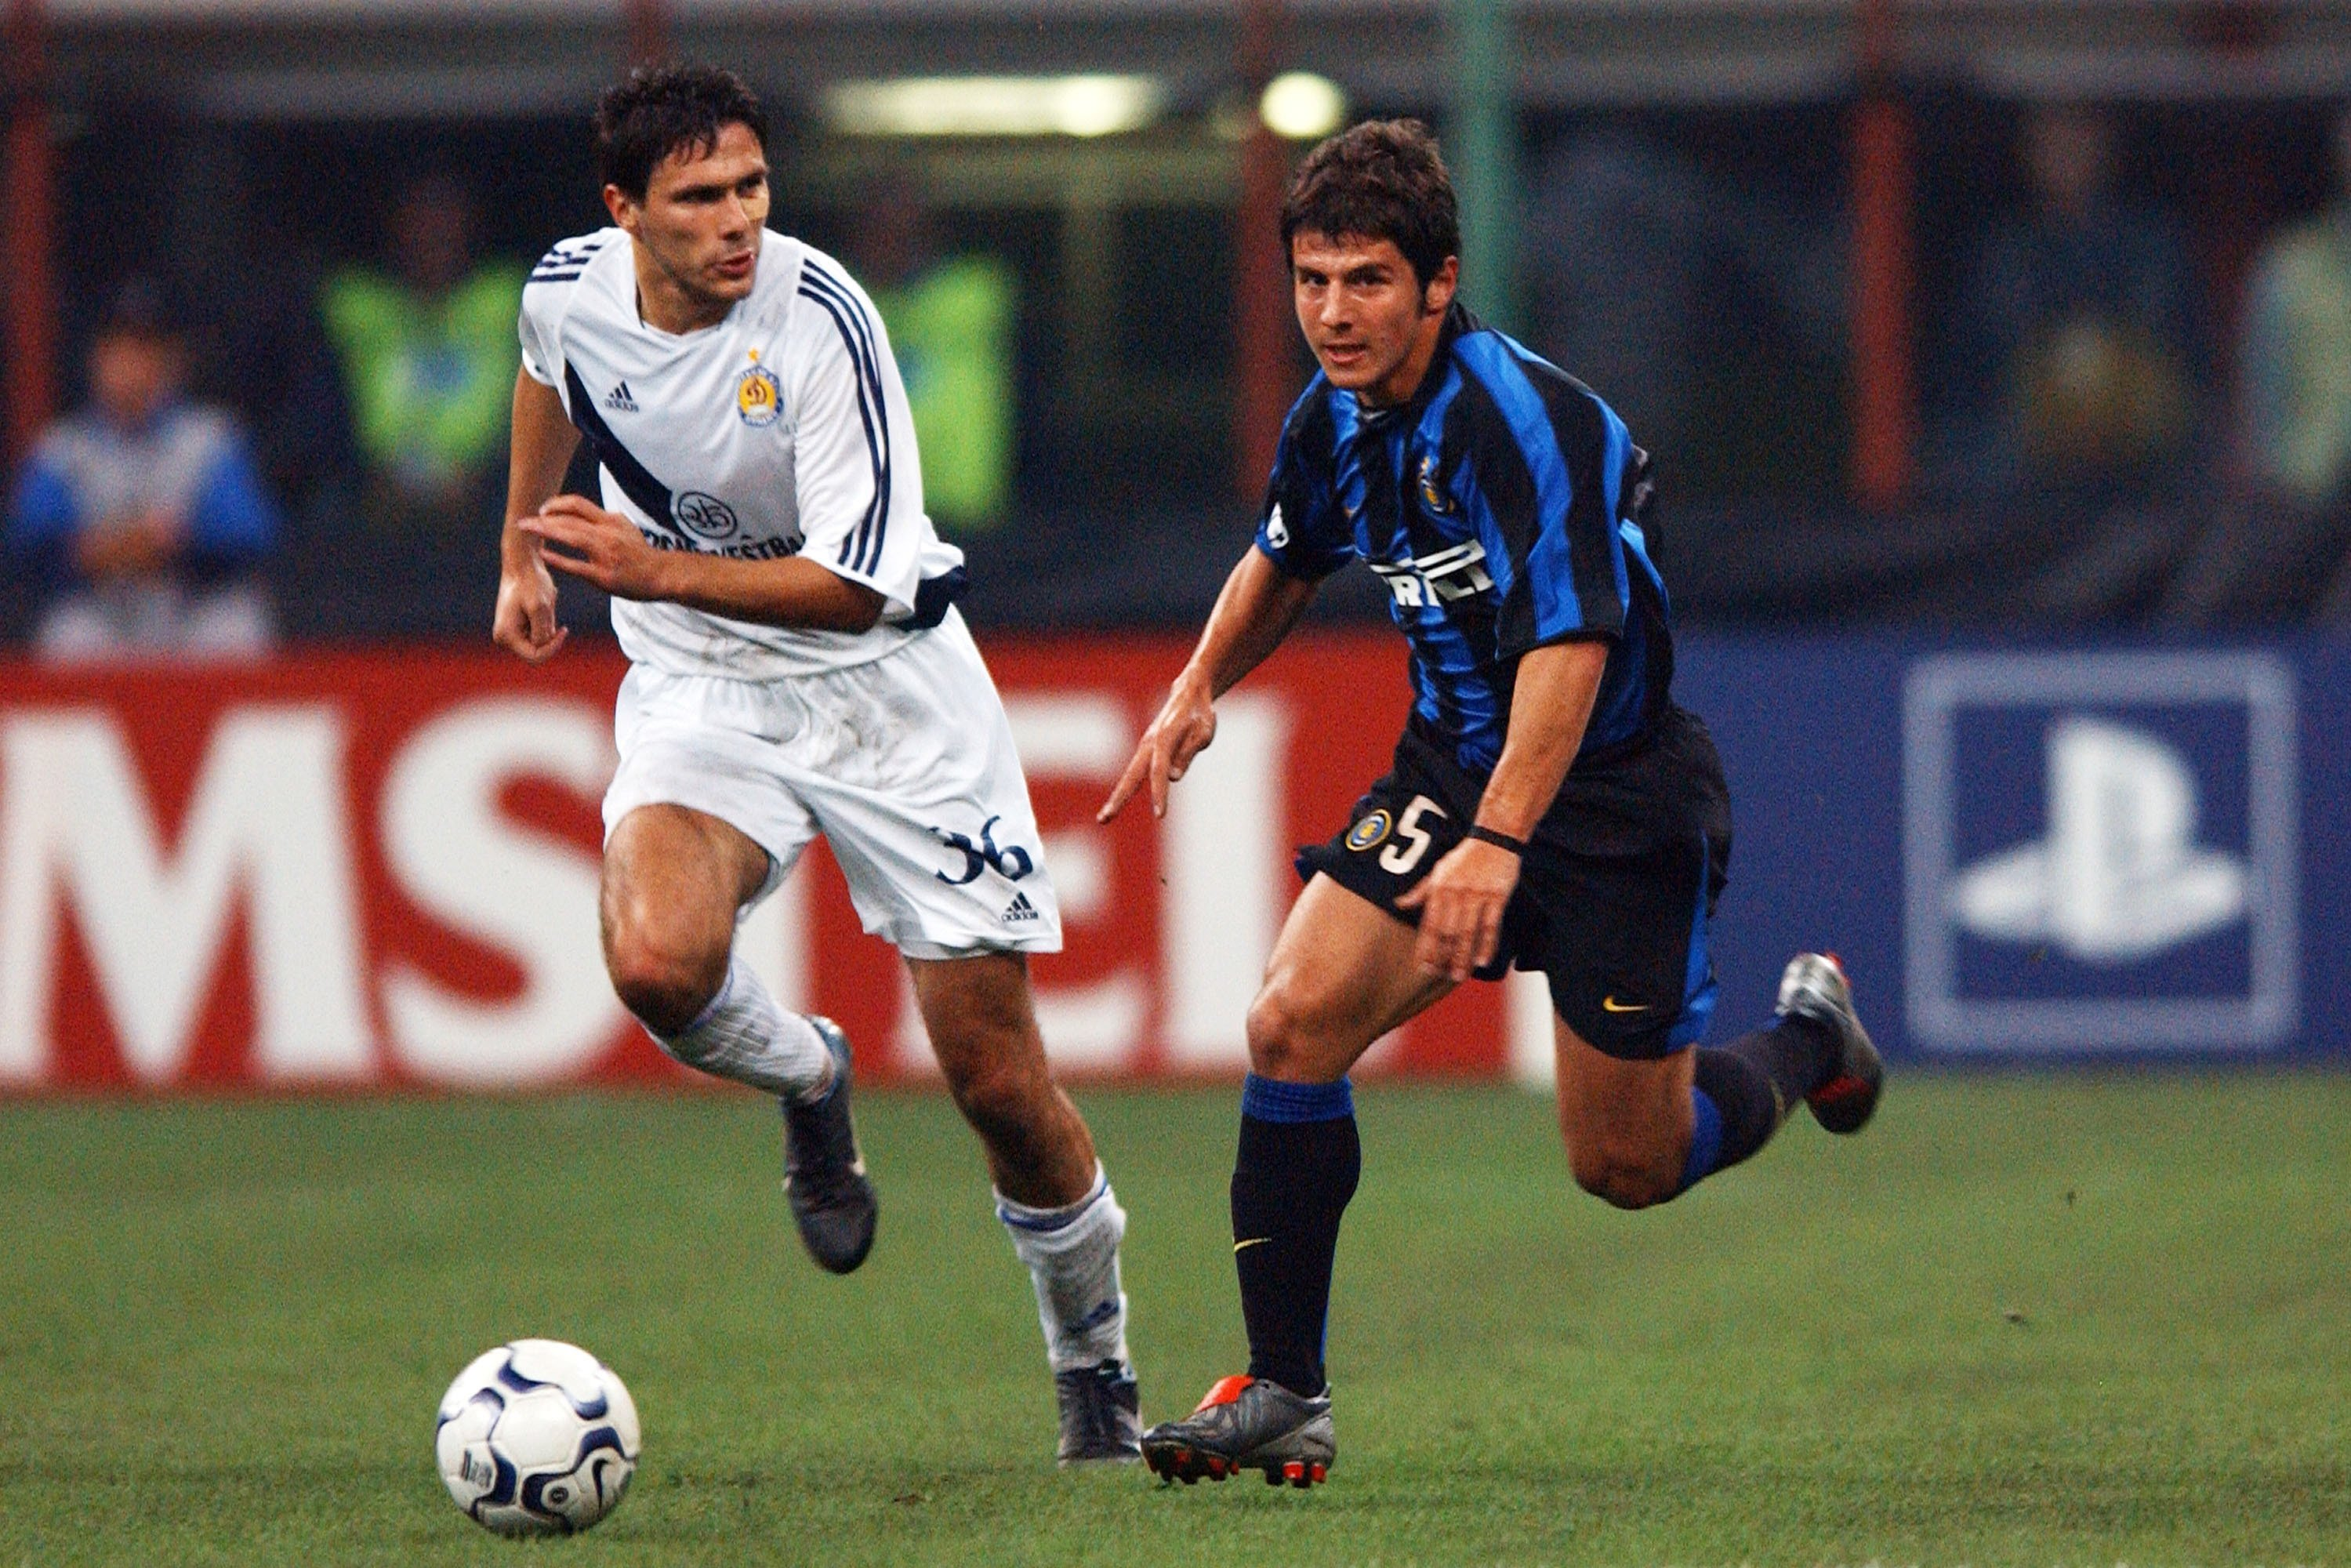 Emre Belözoğlu (R), during a UEFA Champions League match between Inter Milanand Dynamo Kyiv, at the Stadio Giuseppe Meazza, in Milan, Italy, Sept. 30, 2003. (Getty Images)